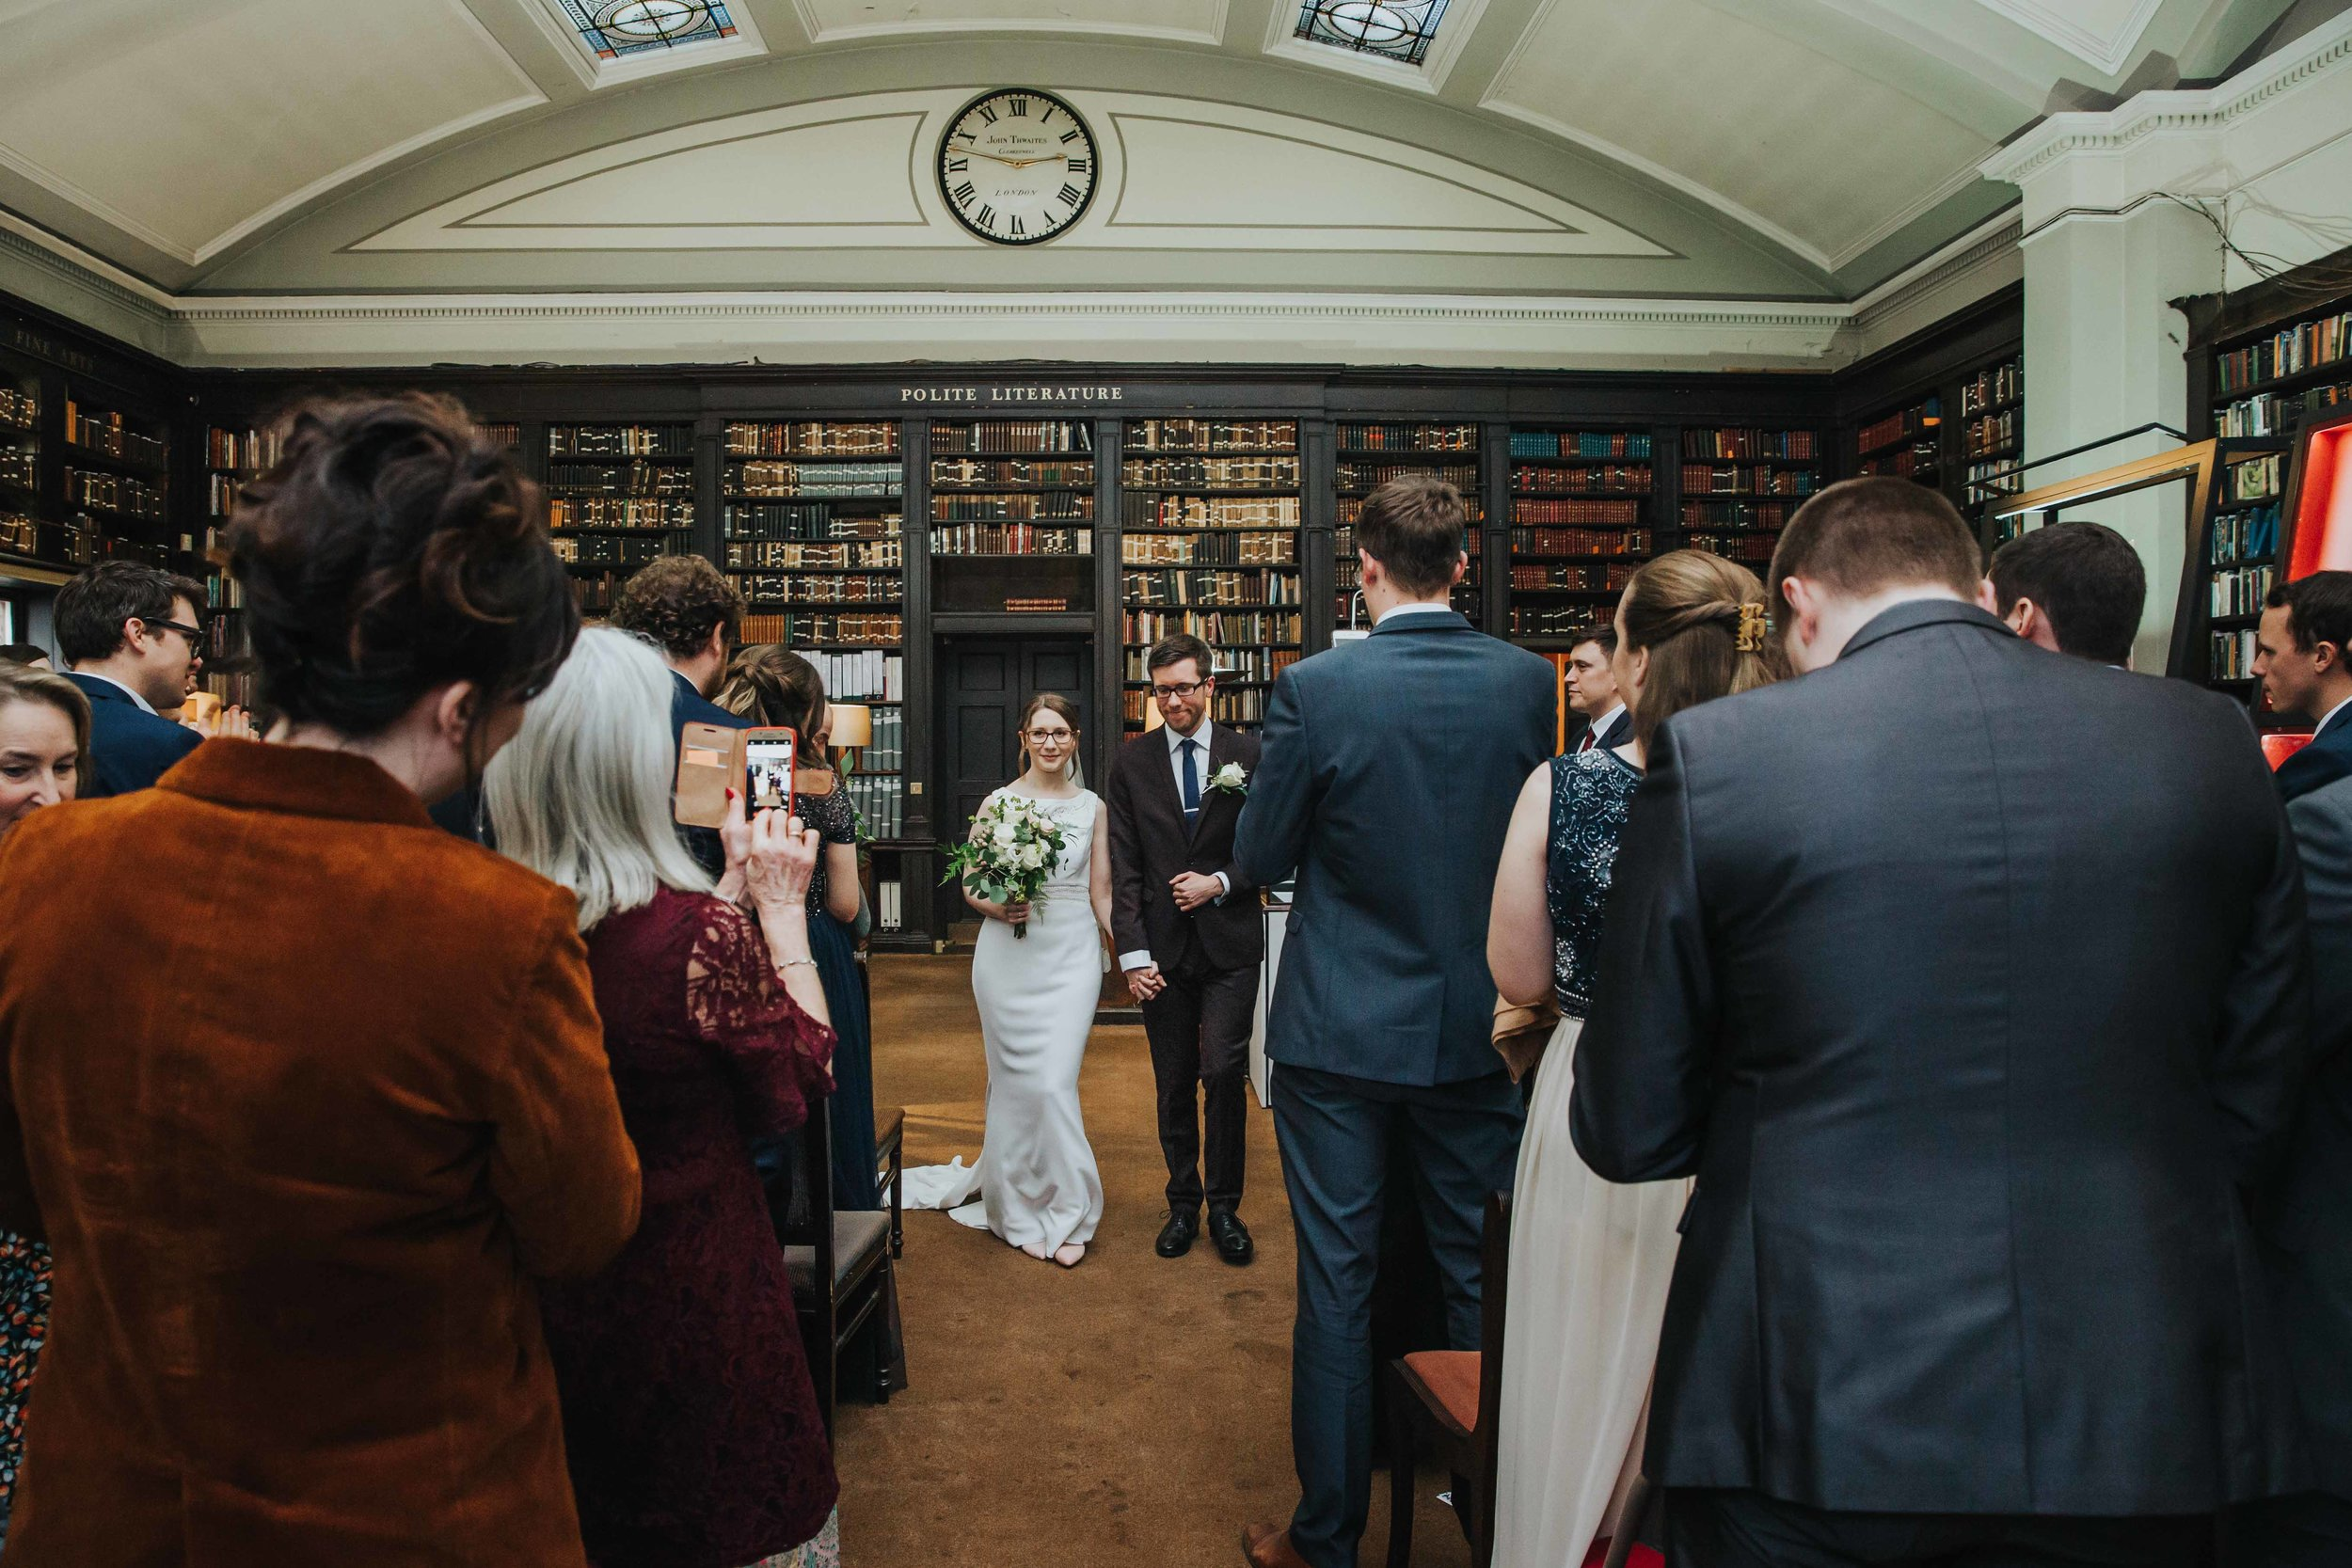 Library wedding venue